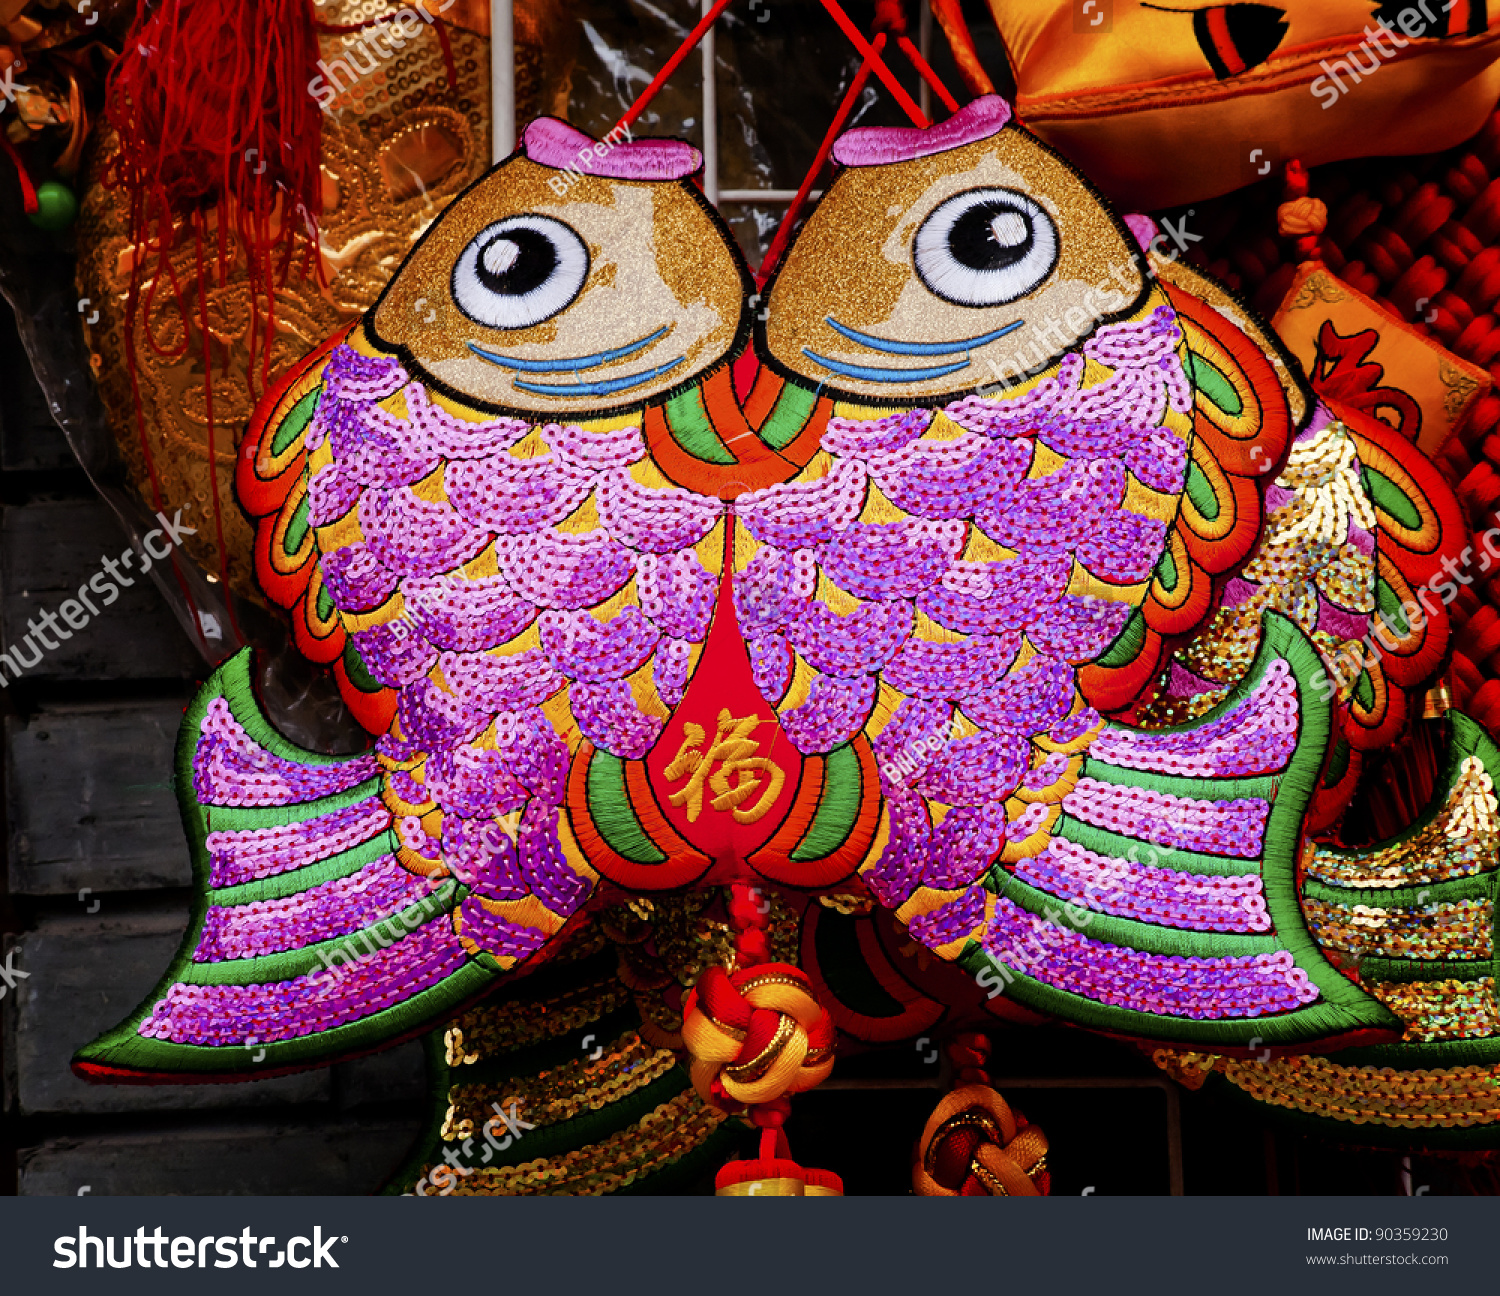 Two lucky cloth fish symbol china stock photo 90359230 shutterstock two lucky cloth fish symbol china symbolize more and are meant to indicate the buycottarizona Gallery